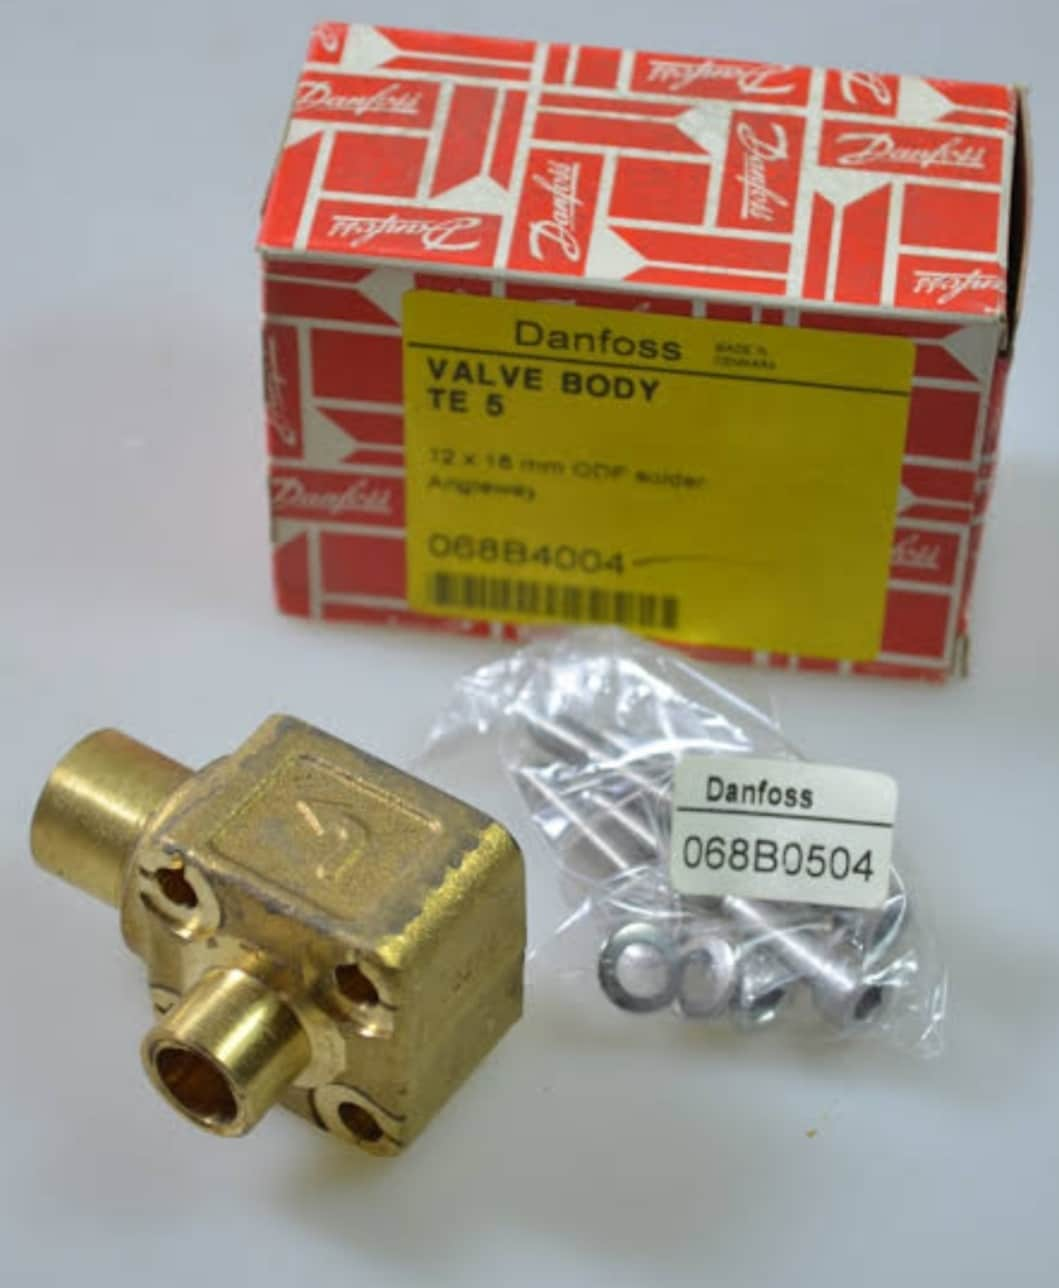 DANFOSS TE5 VALVE BODY [1/2 X 7/8 SOLDER ANGLE CONNECTION][067B4010]